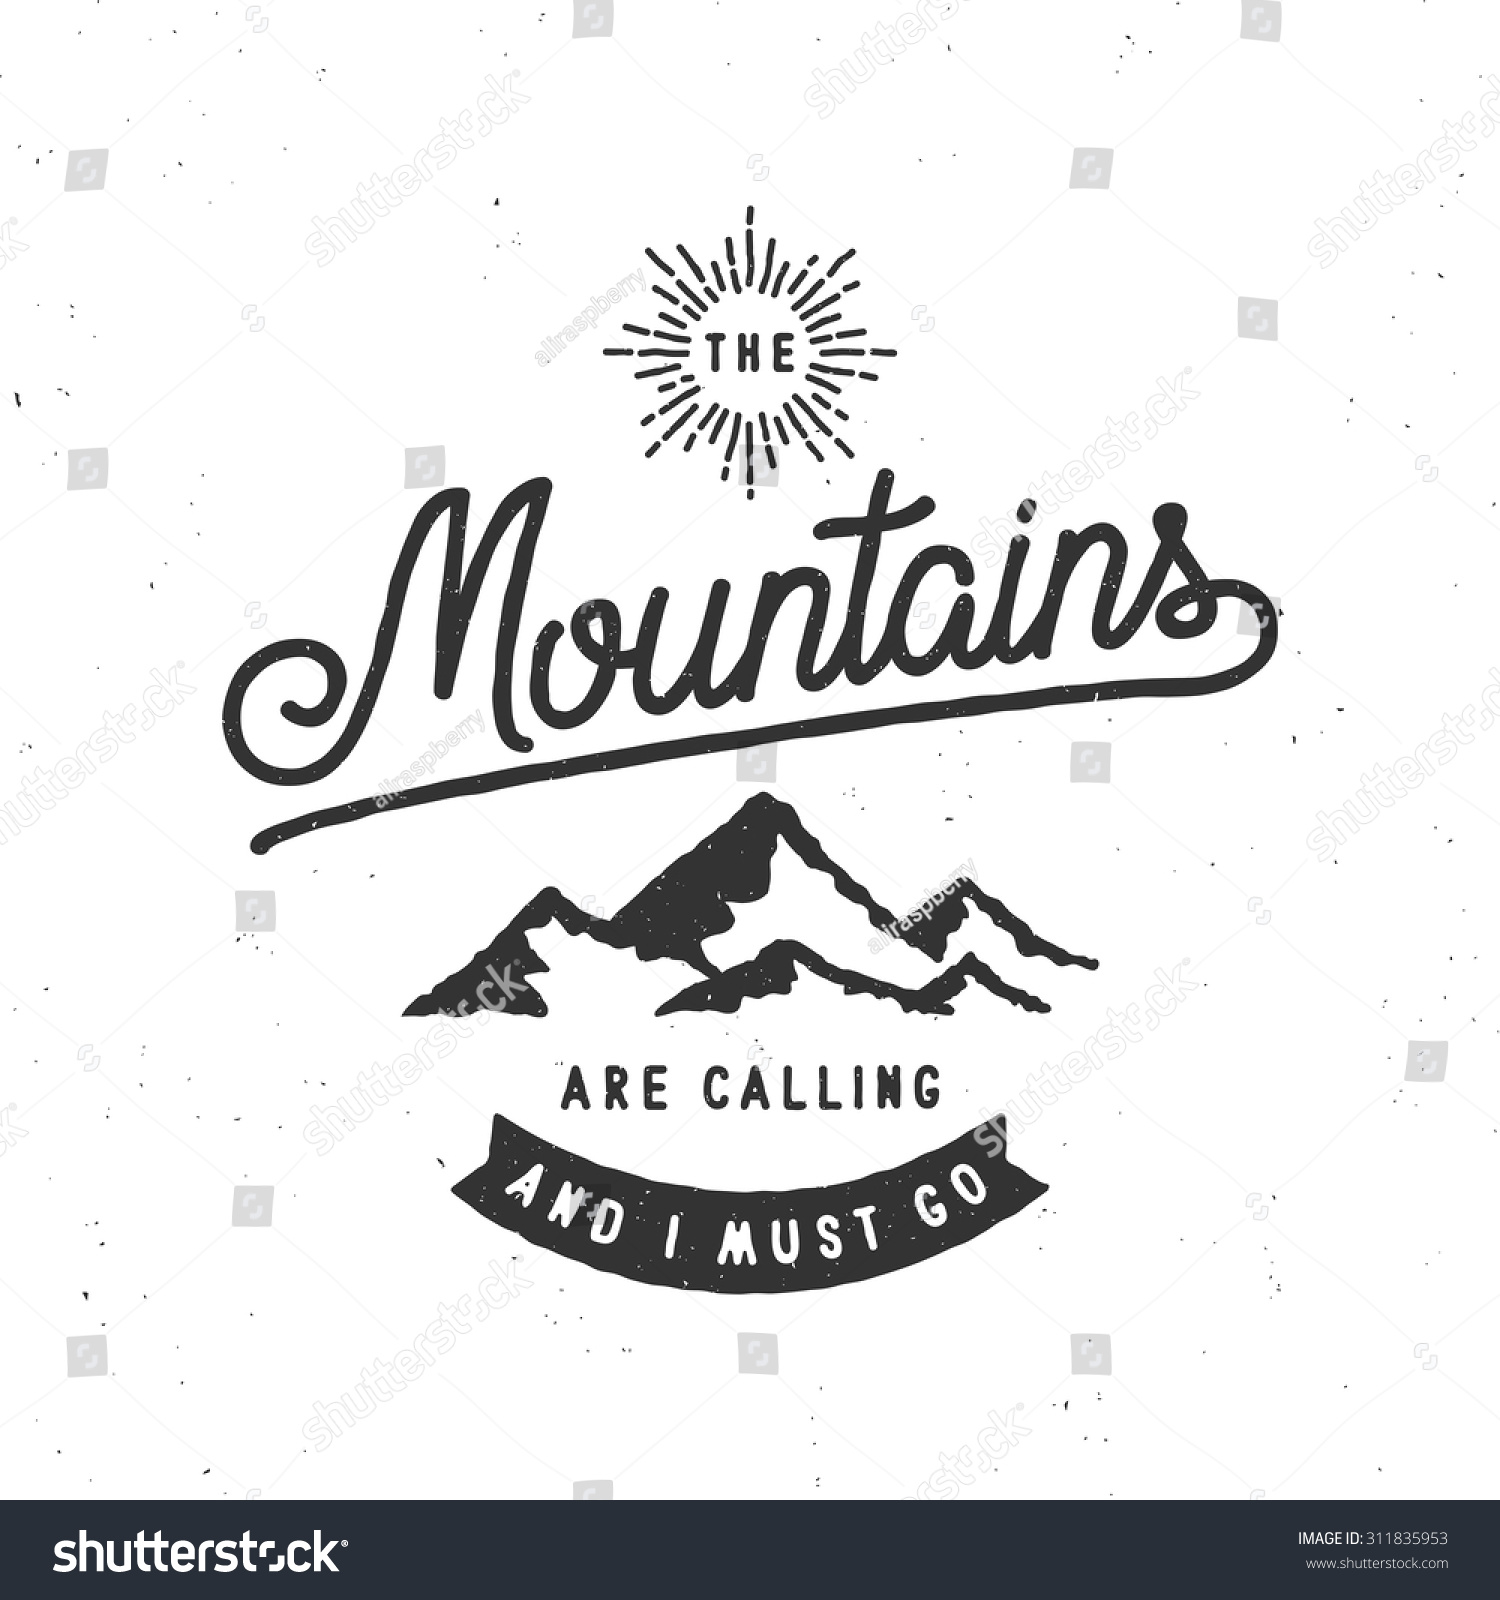 Mountains calling must go vintage stylized stock vector for The mountains are calling and i must go metal sign